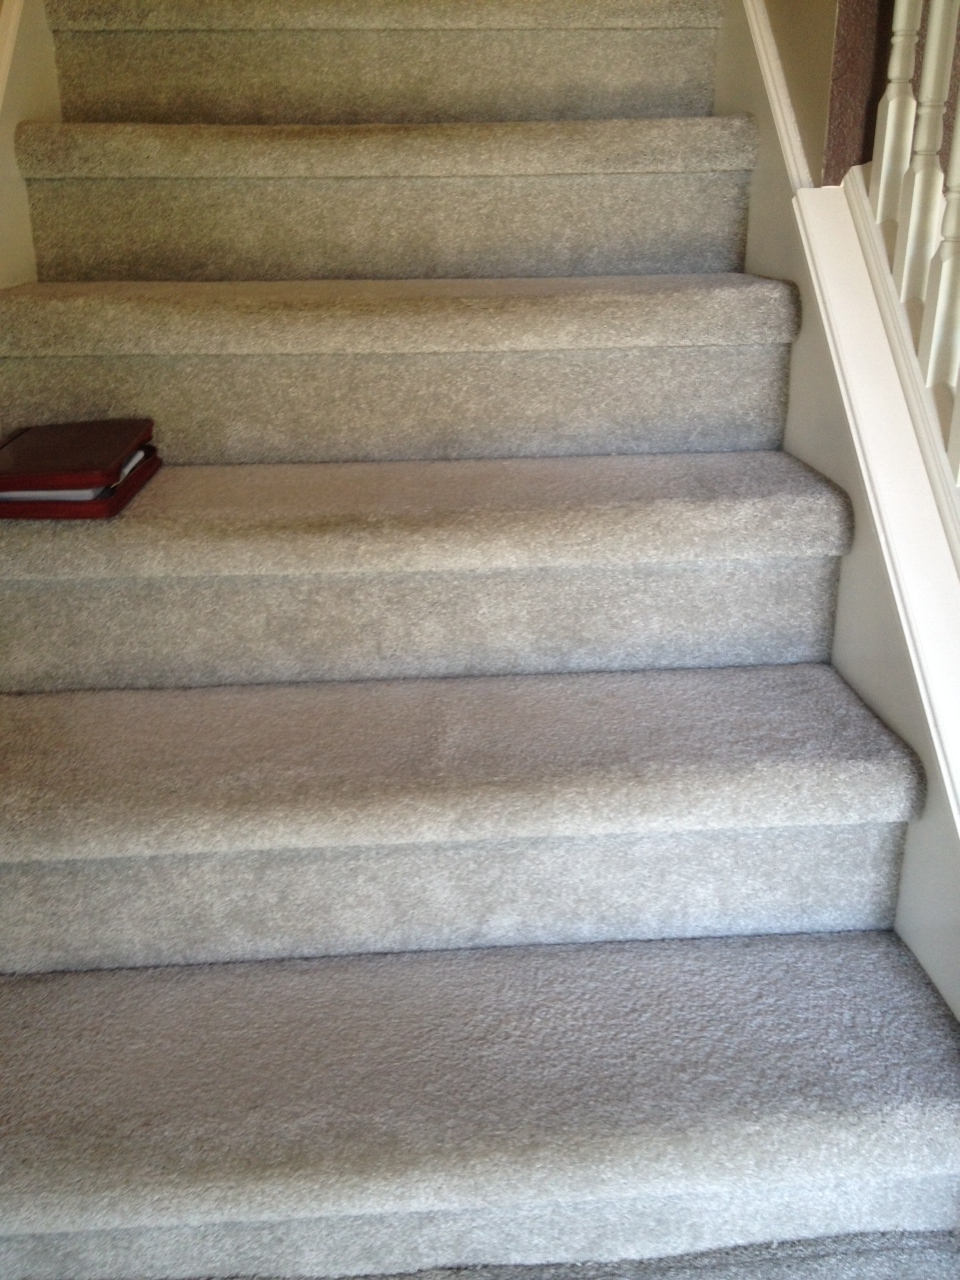 Carpet On Stairs Not Installed Correctly Indianapolis Carpet   Putting Carpet On Stairs   Modern   Colour   Design   Gray   Protector